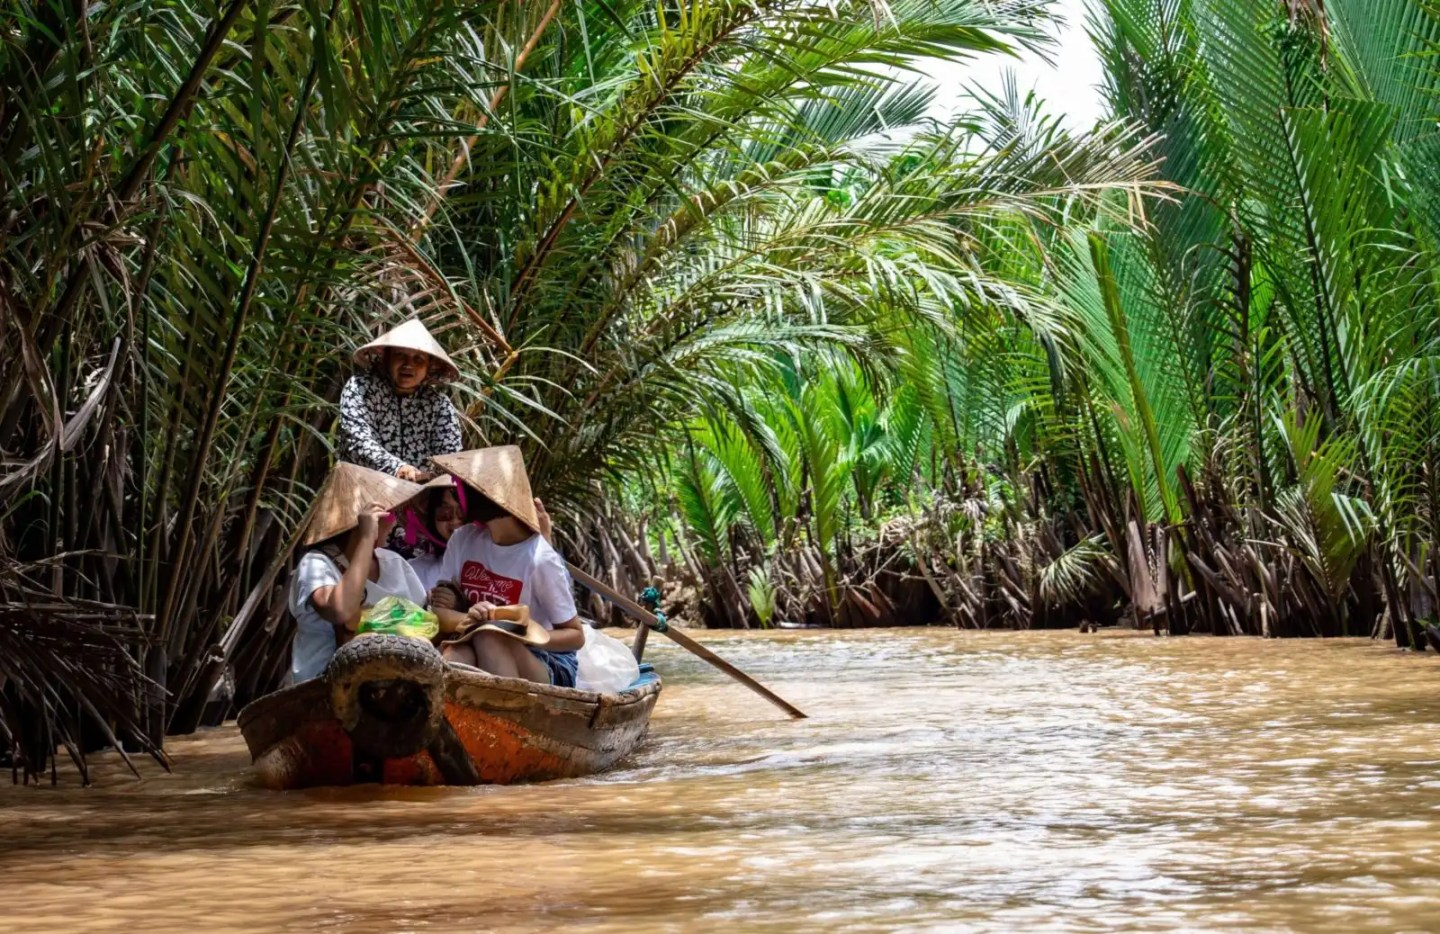 10 days in Vietnam itinerary - Mekong Delta